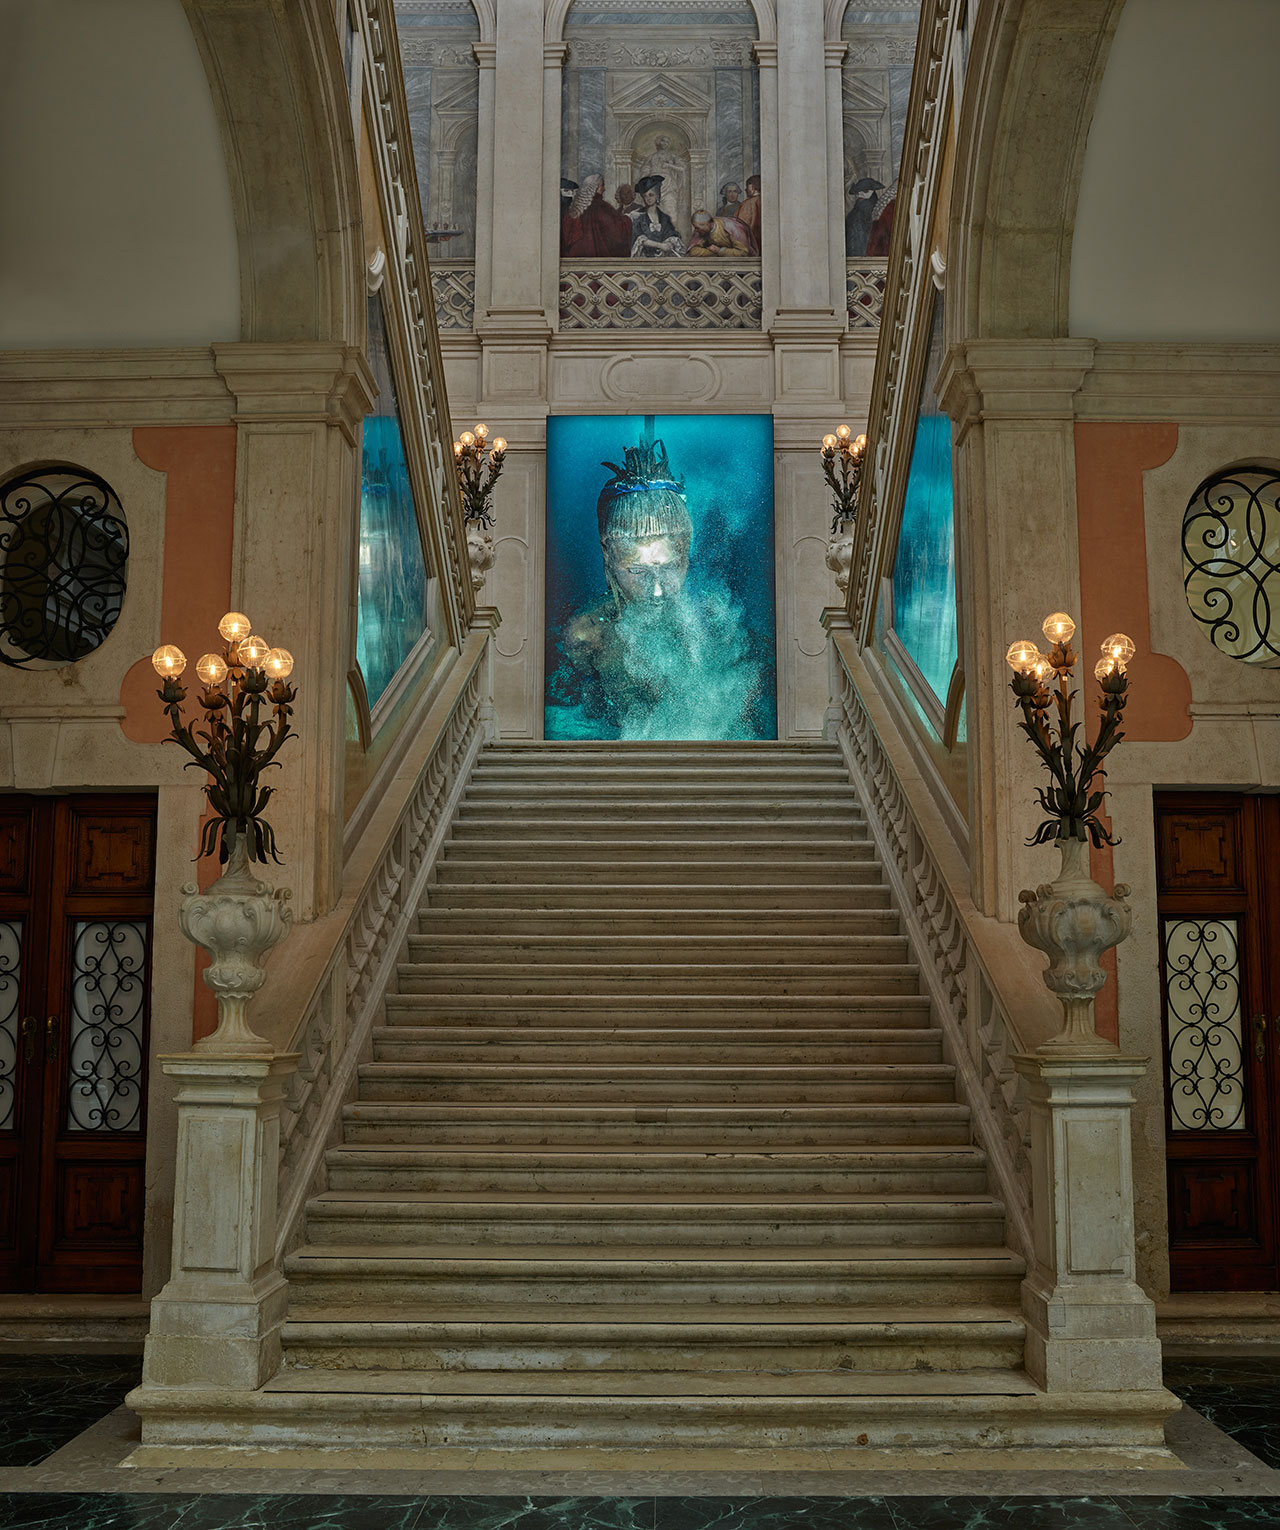 Damien Hirst, Aspect of Katie Ishtar ¥o-landi Beneath the Sea (photography ChristophGerigk). Photographed by Prudence Cuming Associates © Damien Hirst and Science Ltd. All rights reserved, DACS 2017.